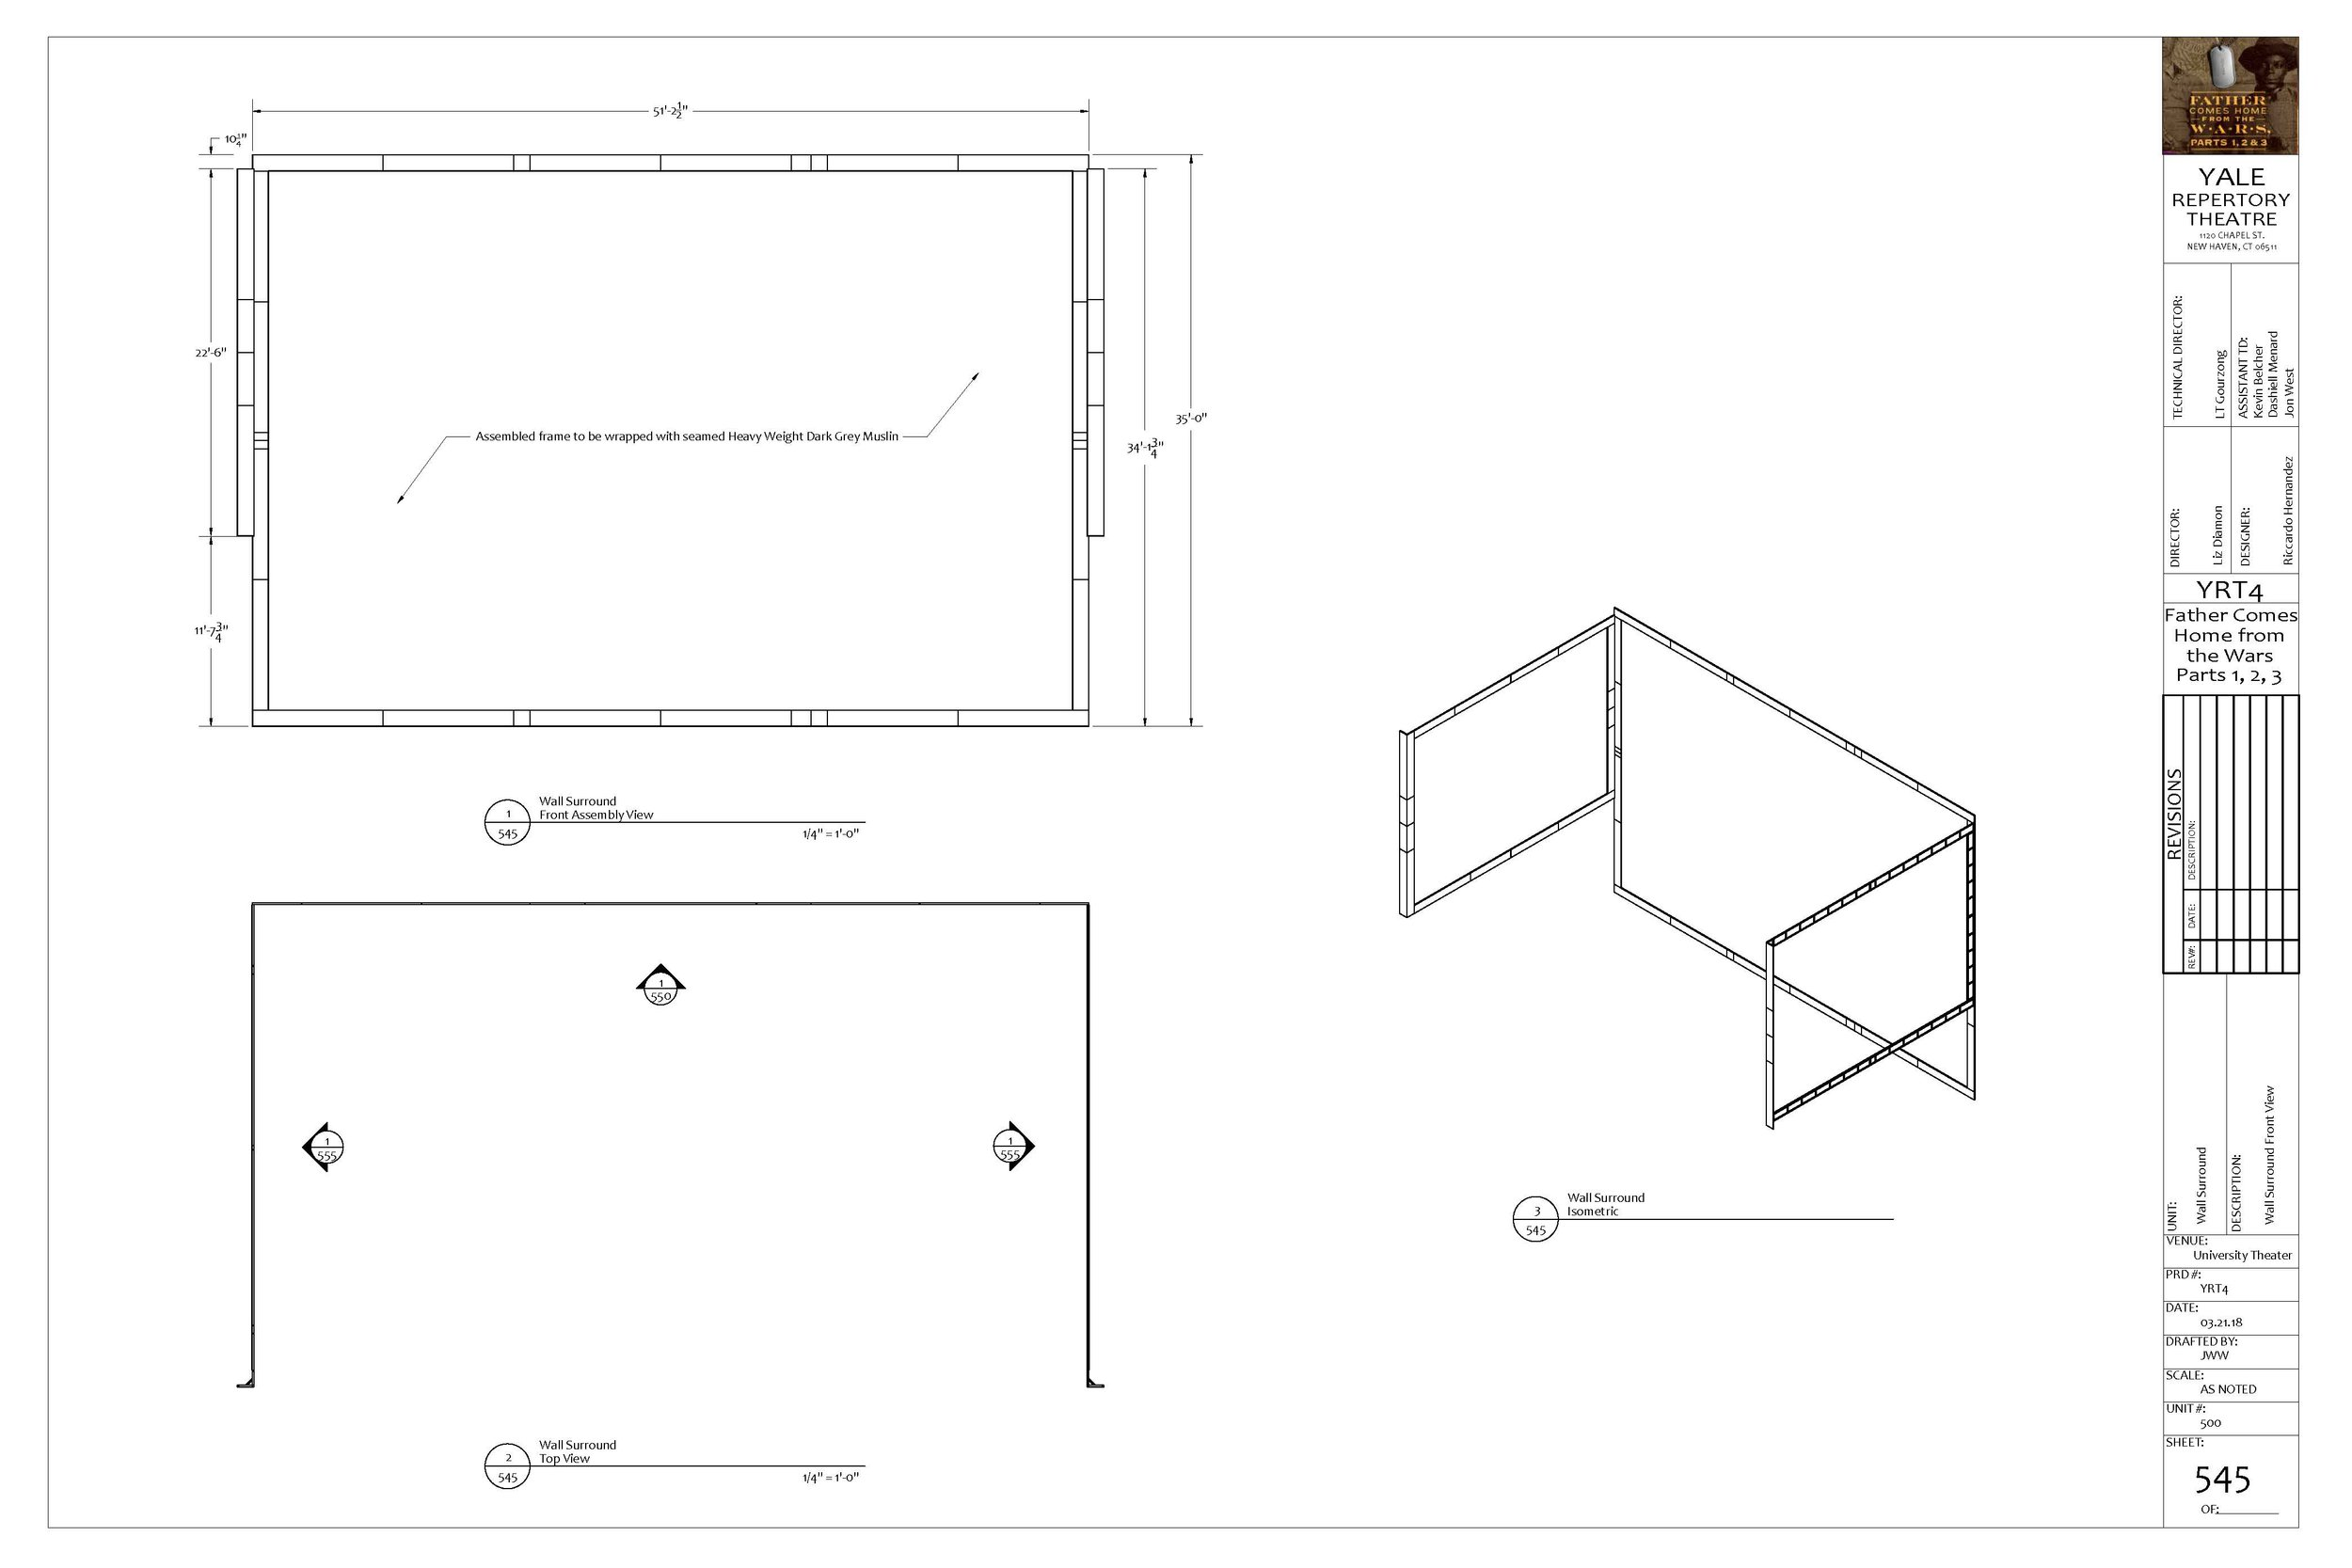 Wall Surround assembly drawing - Jon West, 2018.  PDF available here